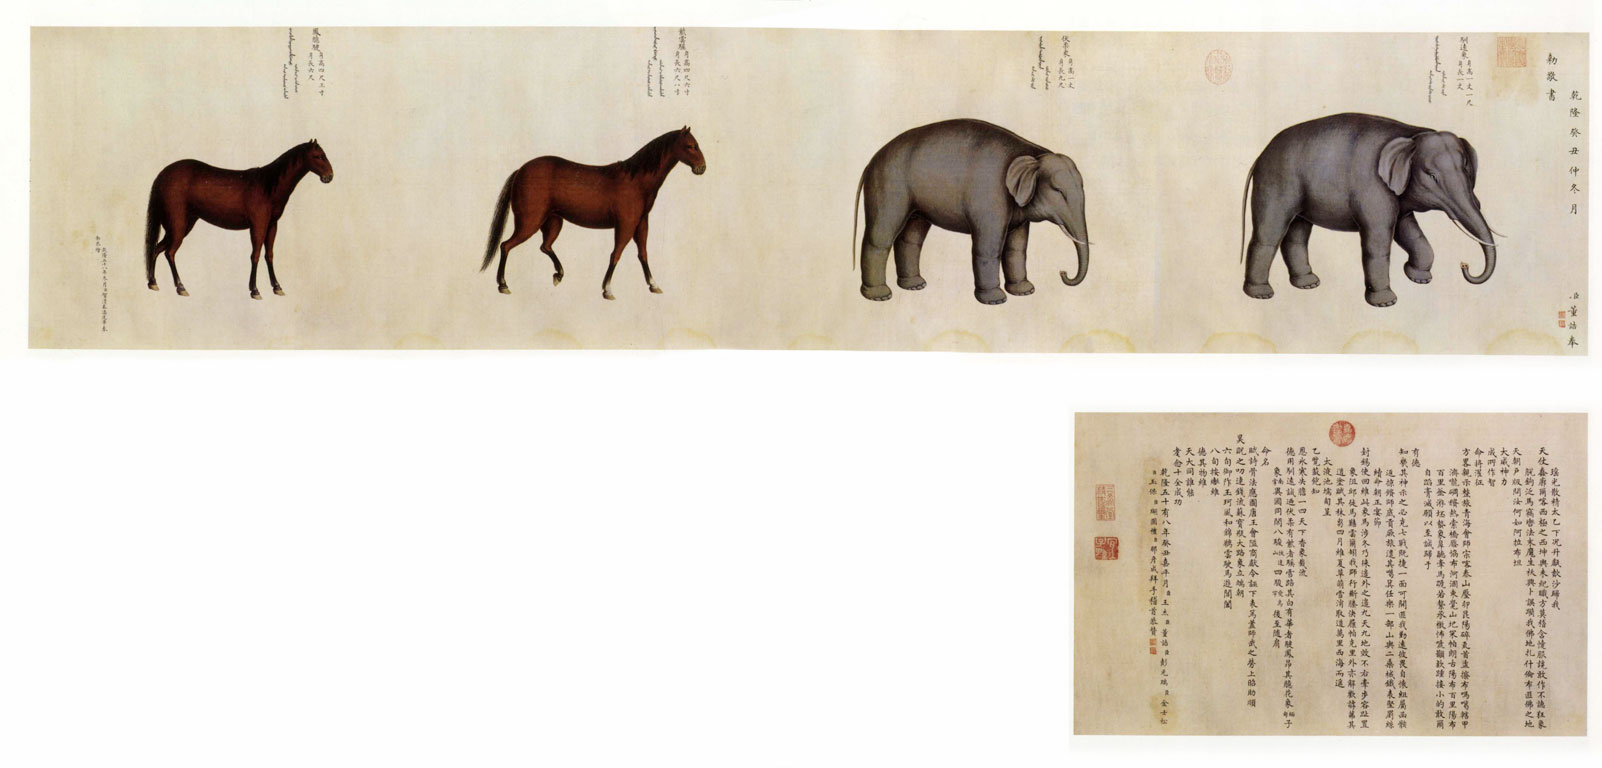 On the top, two horses and two elephants, all facing to the right; on the bottom, Chinese text